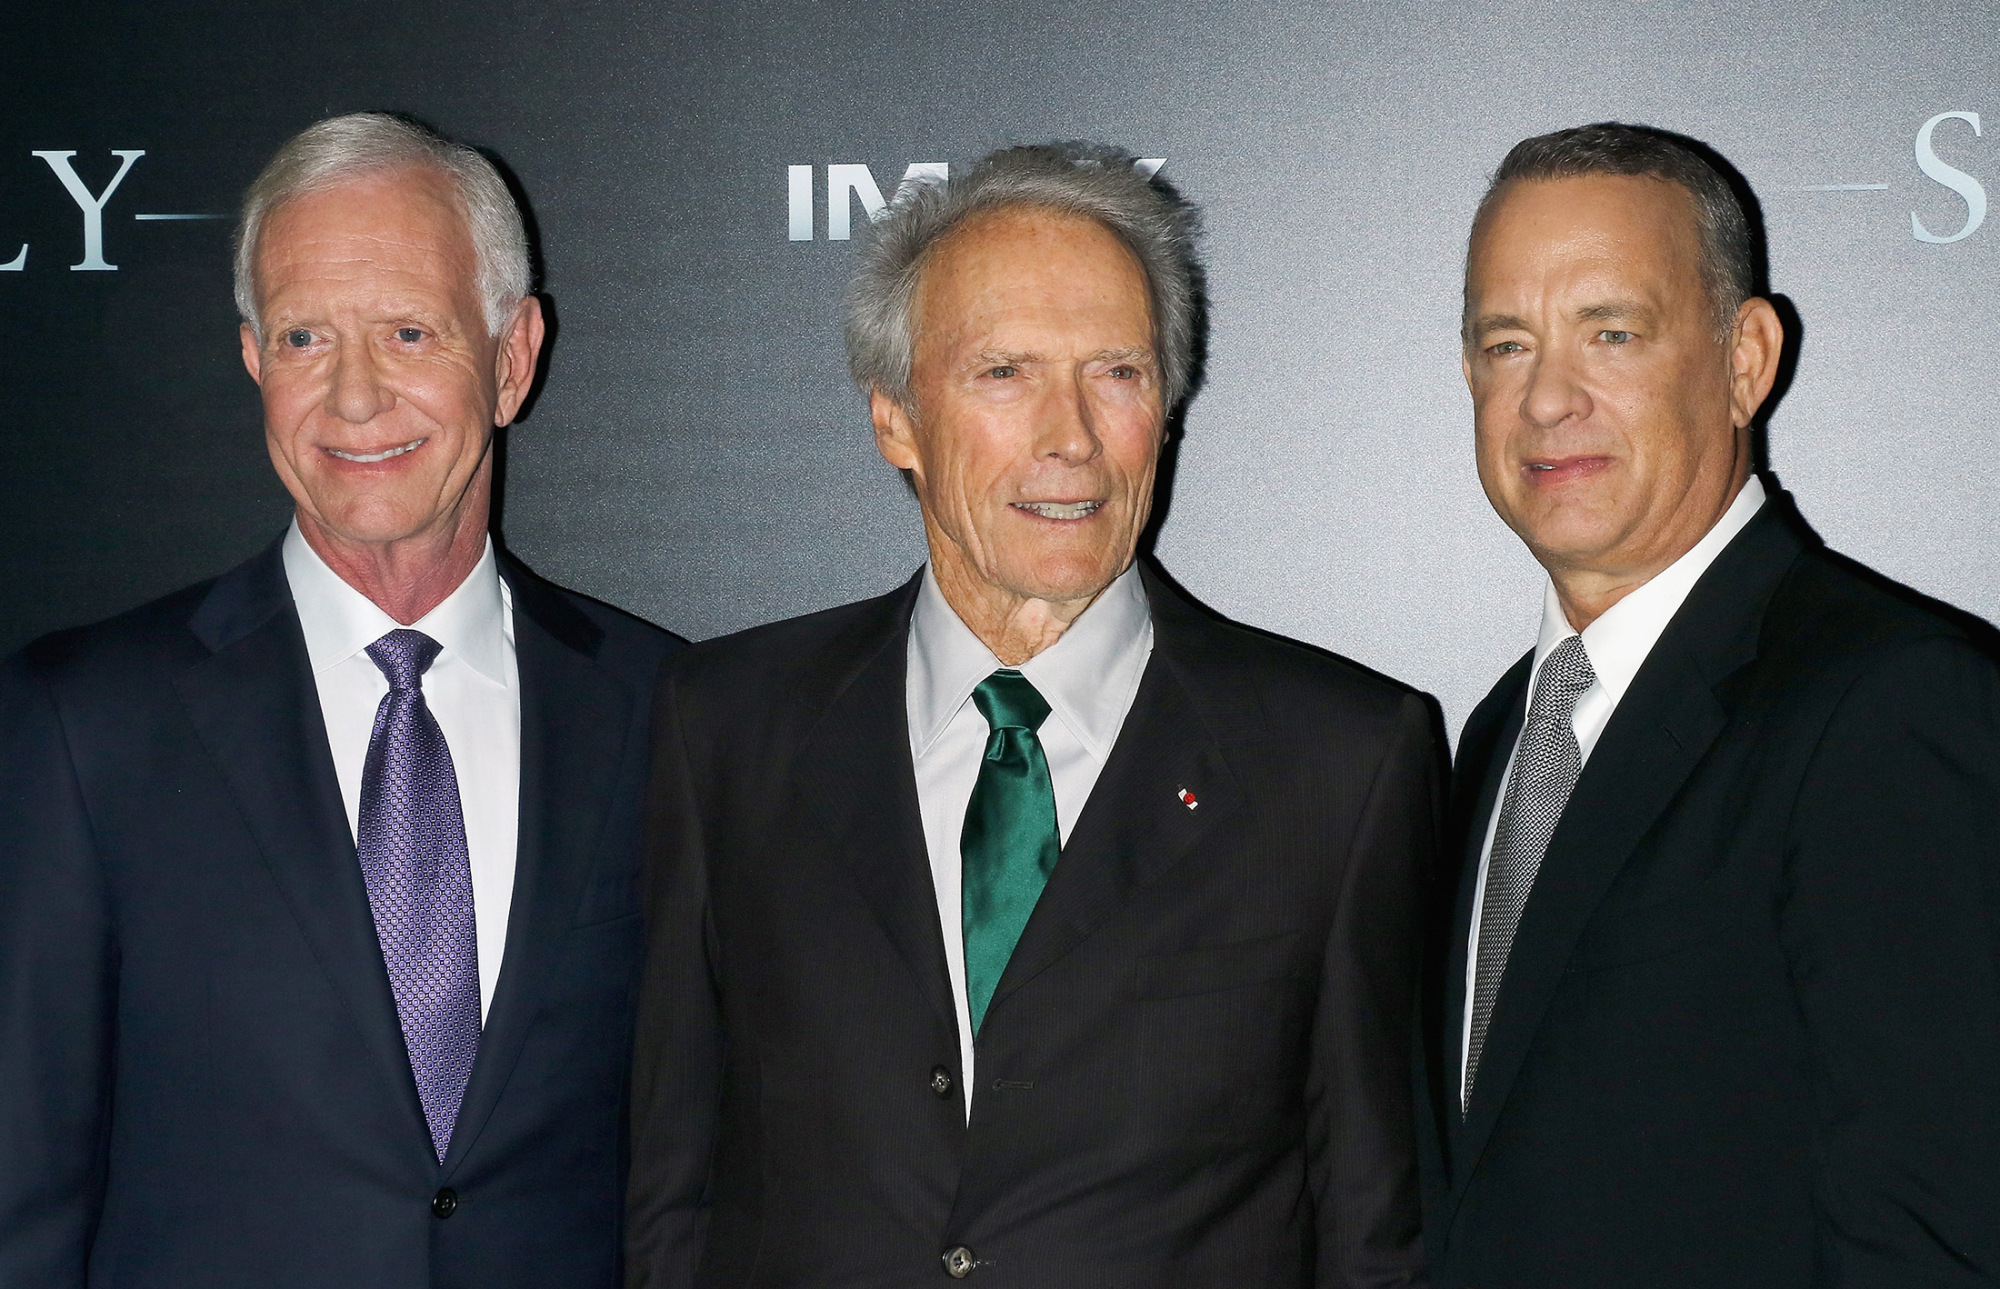 The Real Captain Sully, Clint Eastwood, and Tom Hanks